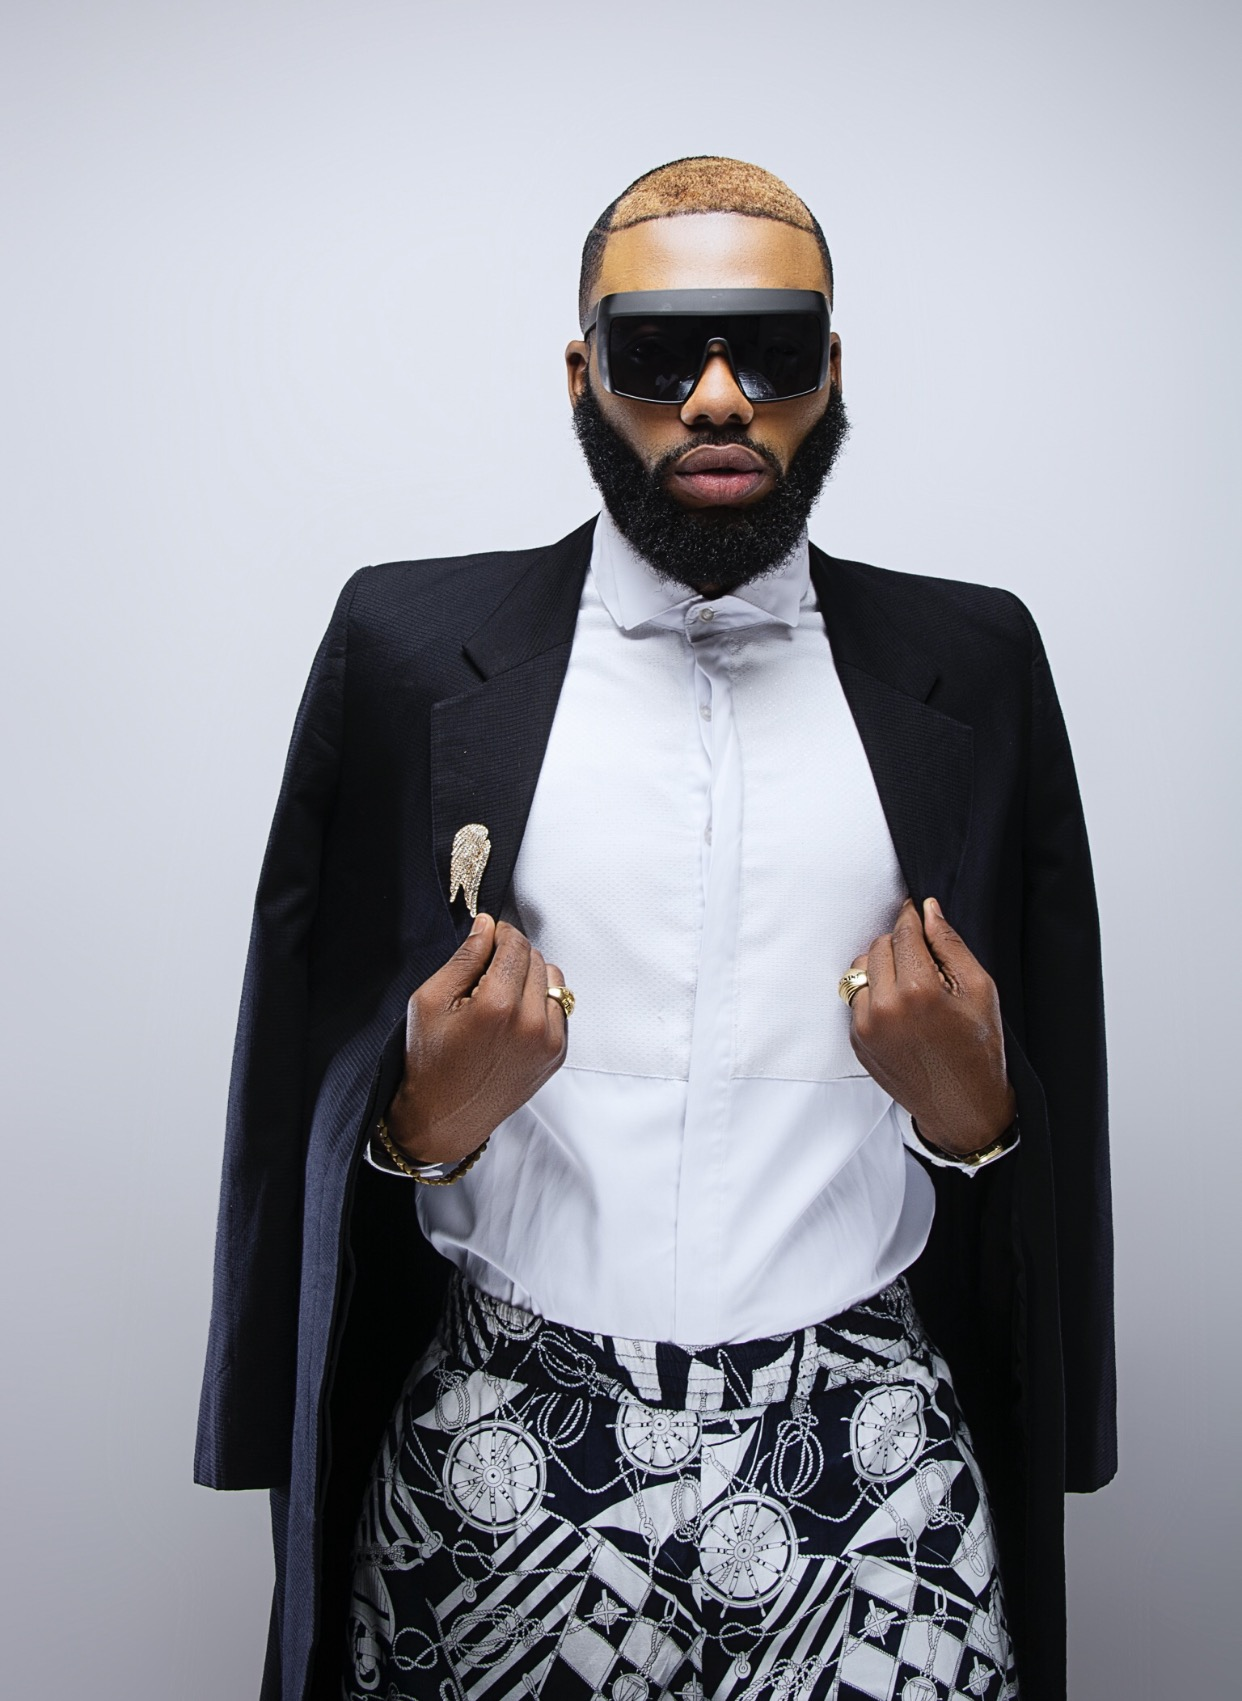 Celebrity Stylist, Swankyjerry Releases Dapper New Photos To Celebrate Birthday